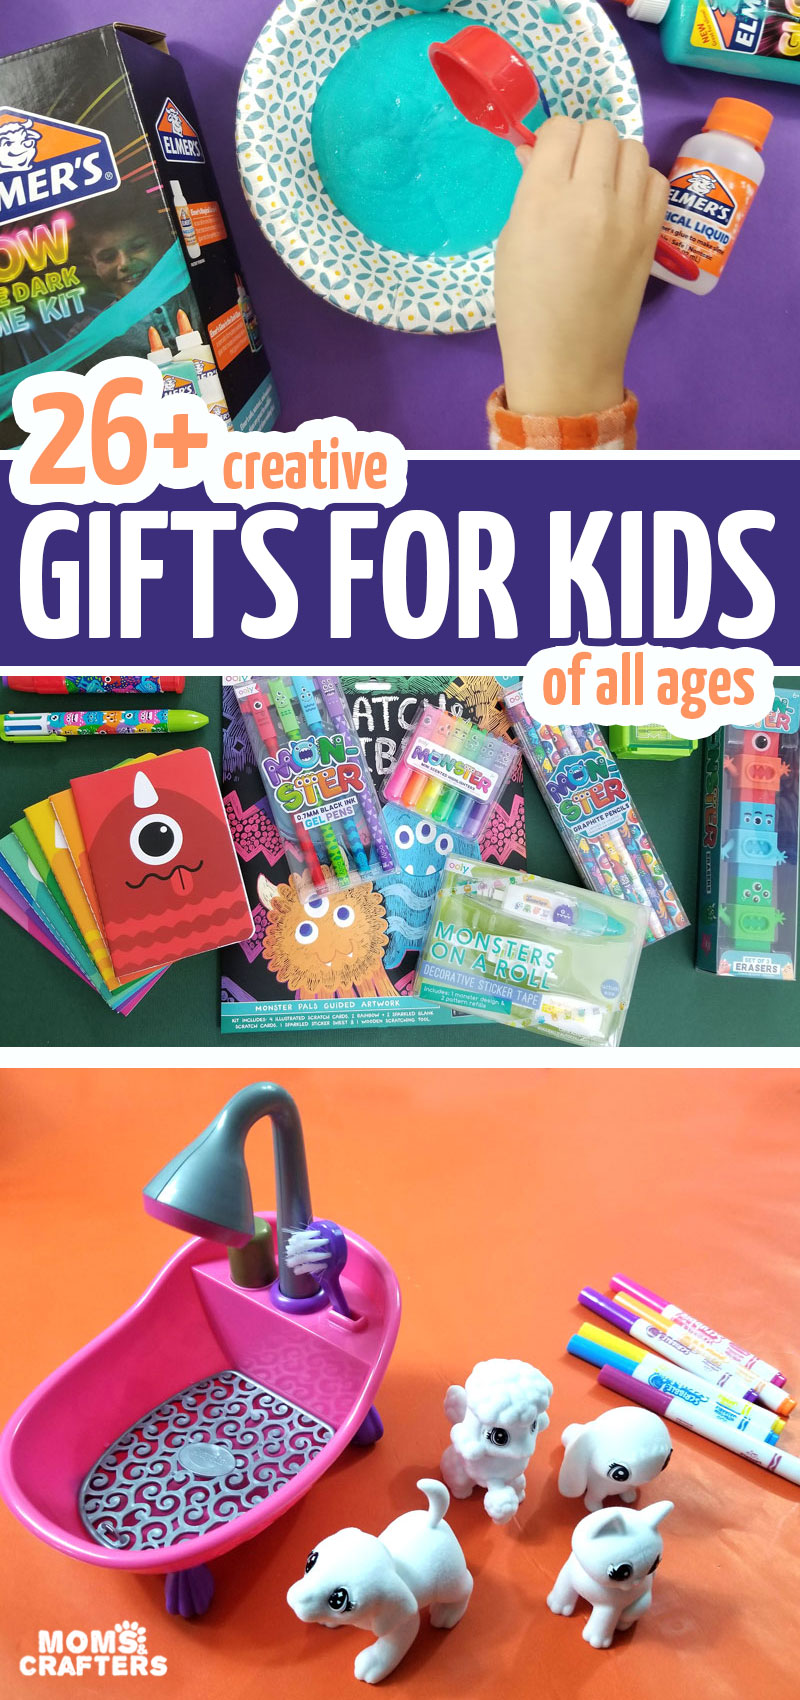 Looking for the ultimate list of gifts for creative kids? Check out this list for gift ideas for crafty kids, toddlers, teens, tweens, and preschoolers!